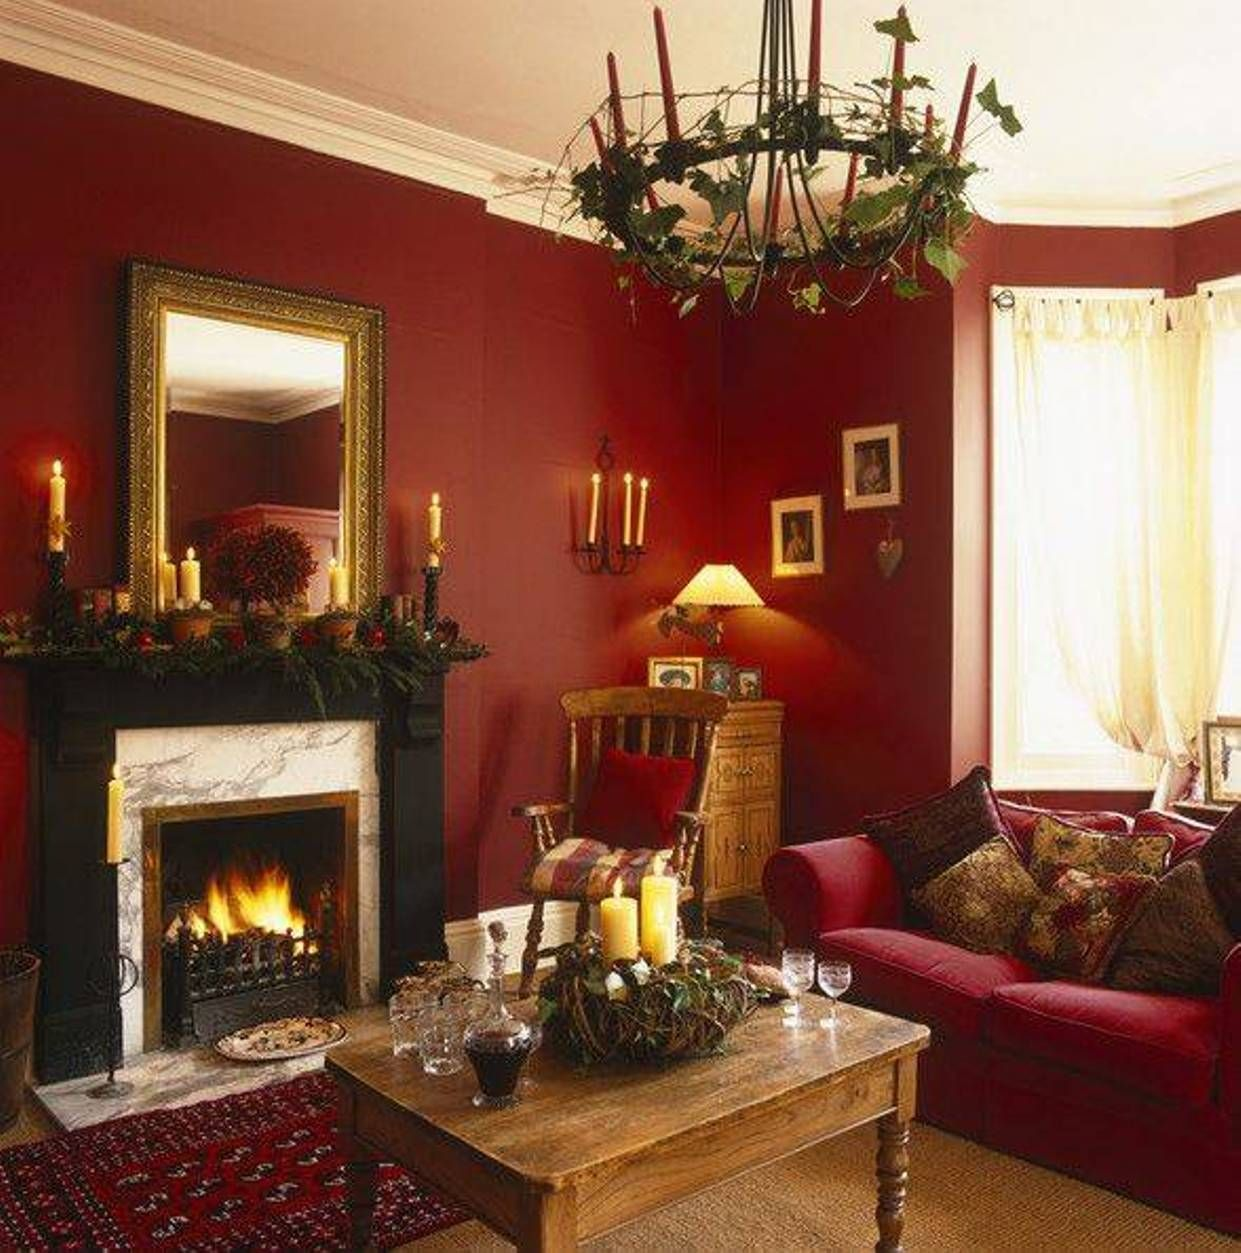 Red Ornaments For Living Room: Red Gold Brown Color Scheme - Google Search